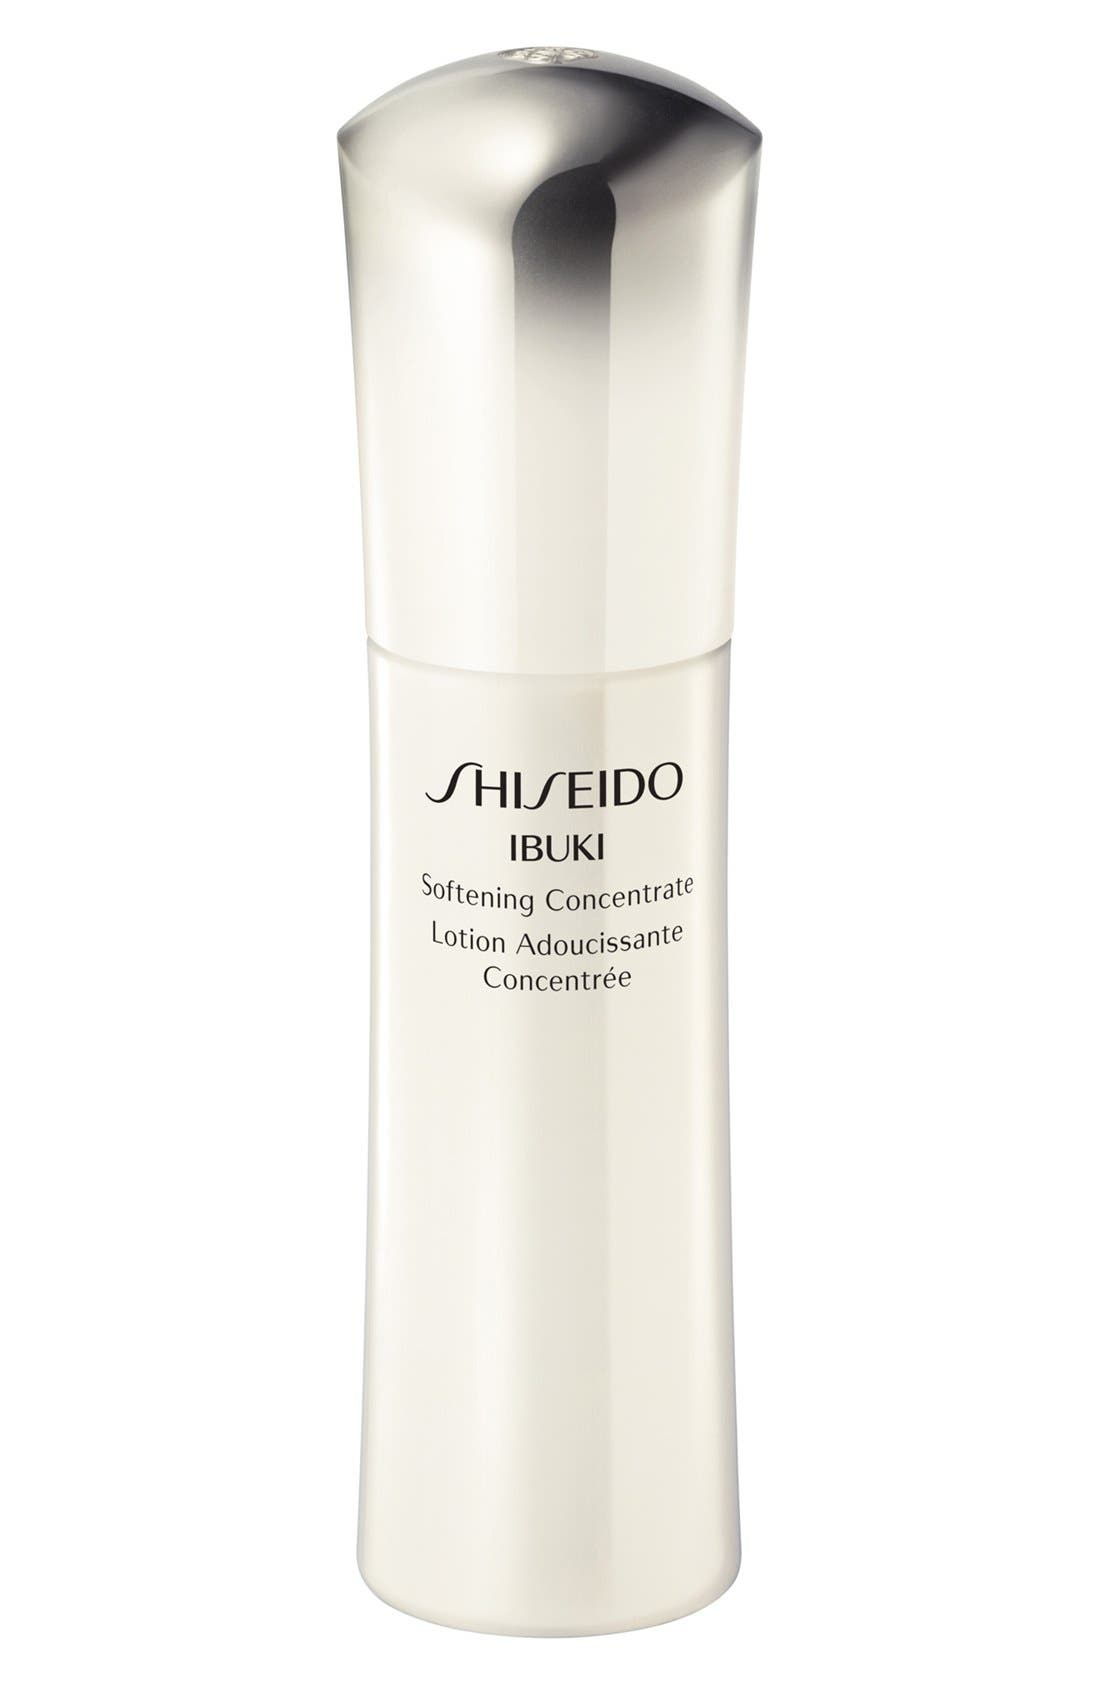 Shiseido 'Ibuki' Softening Concentrate